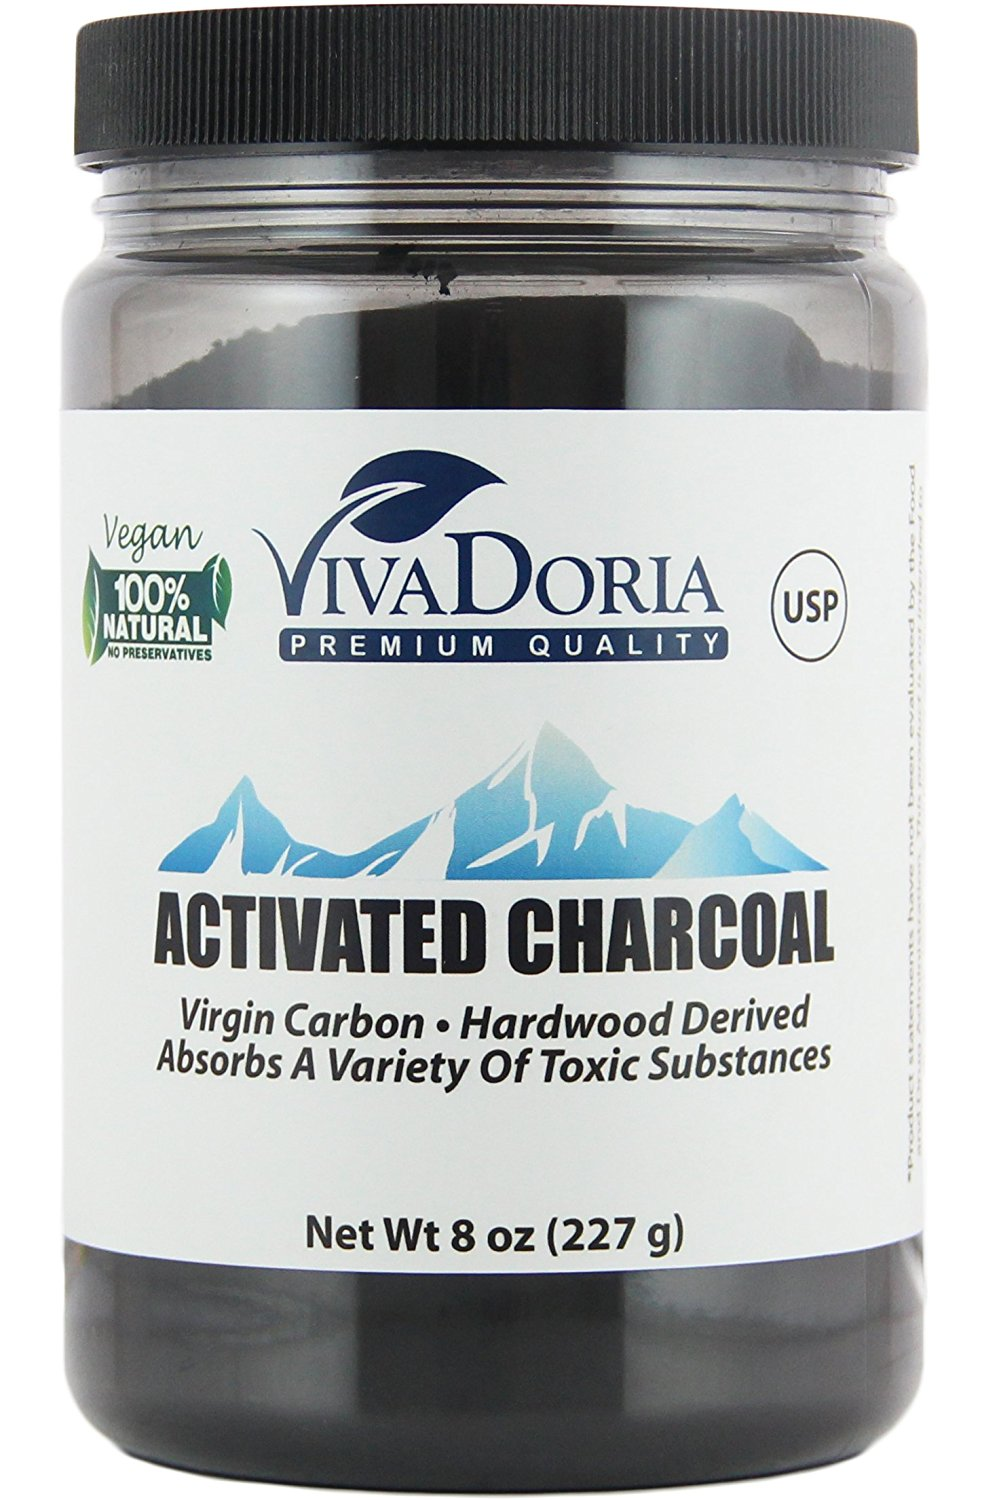 Activated Charcoal - Food grade activated charcoal that I use for digestive health and regularity